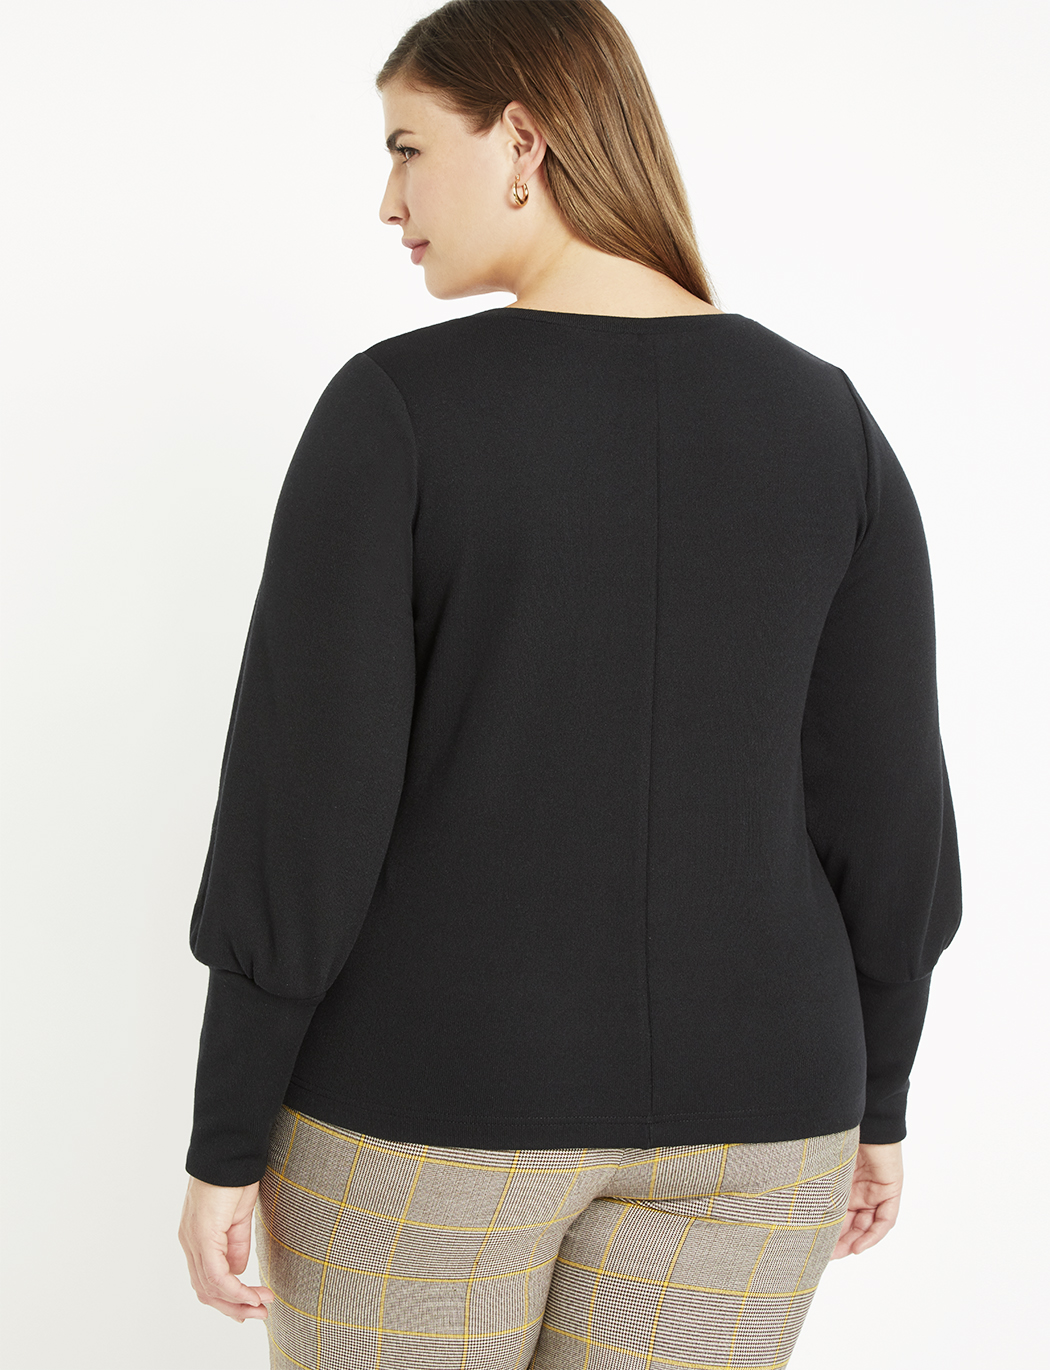 Scoop Neck Top with Puff Sleeve